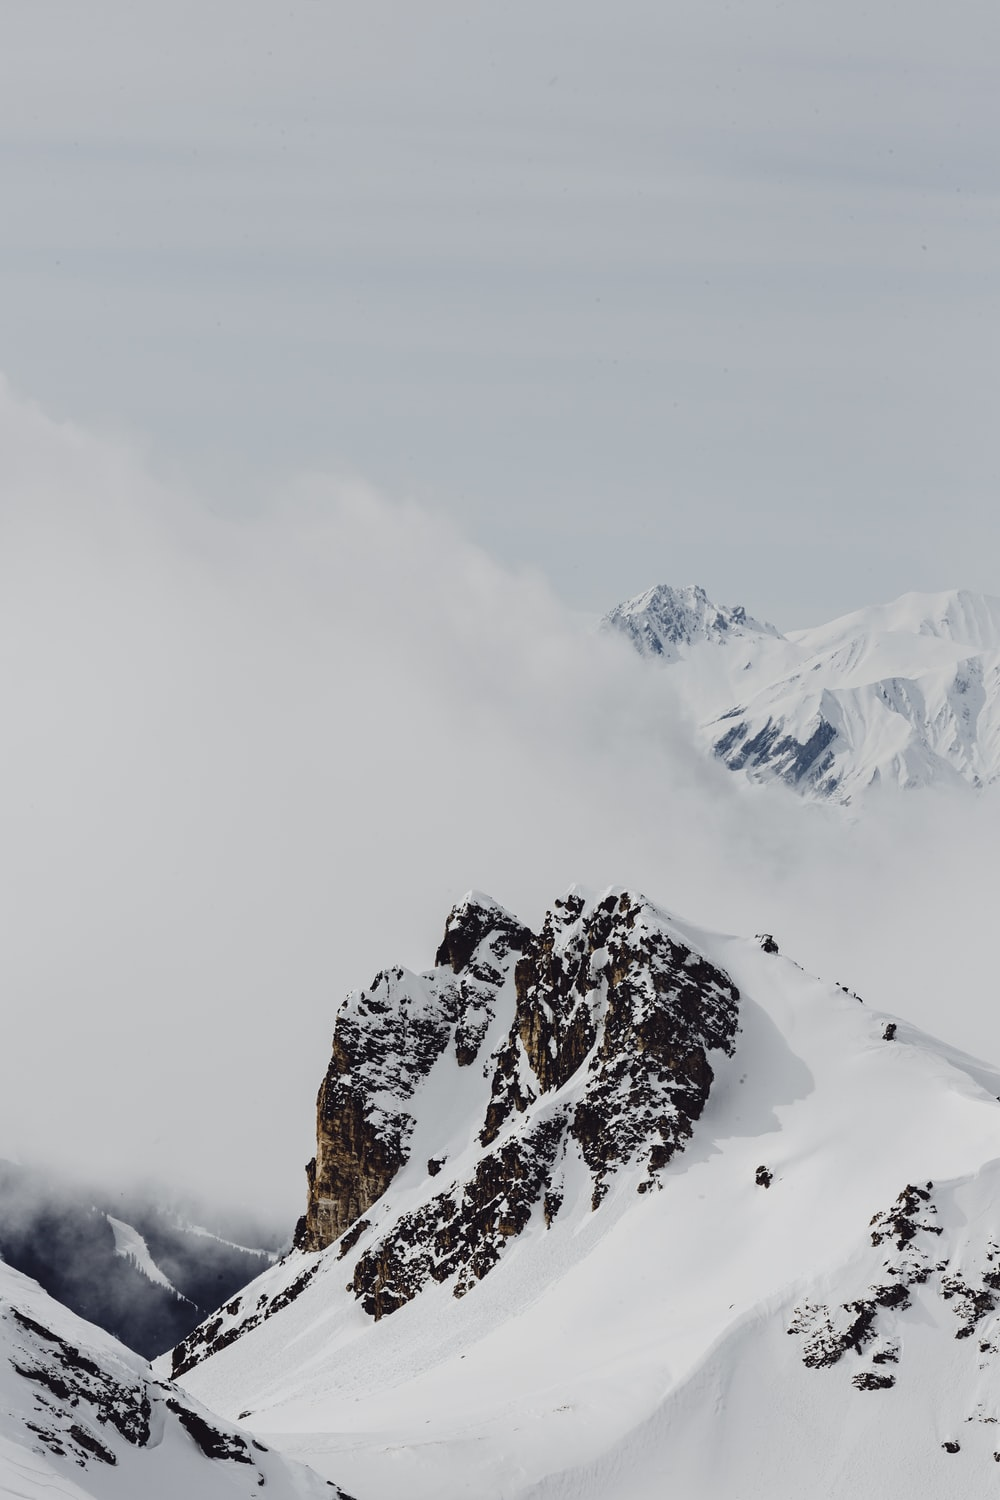 mountains covering snow during daytime